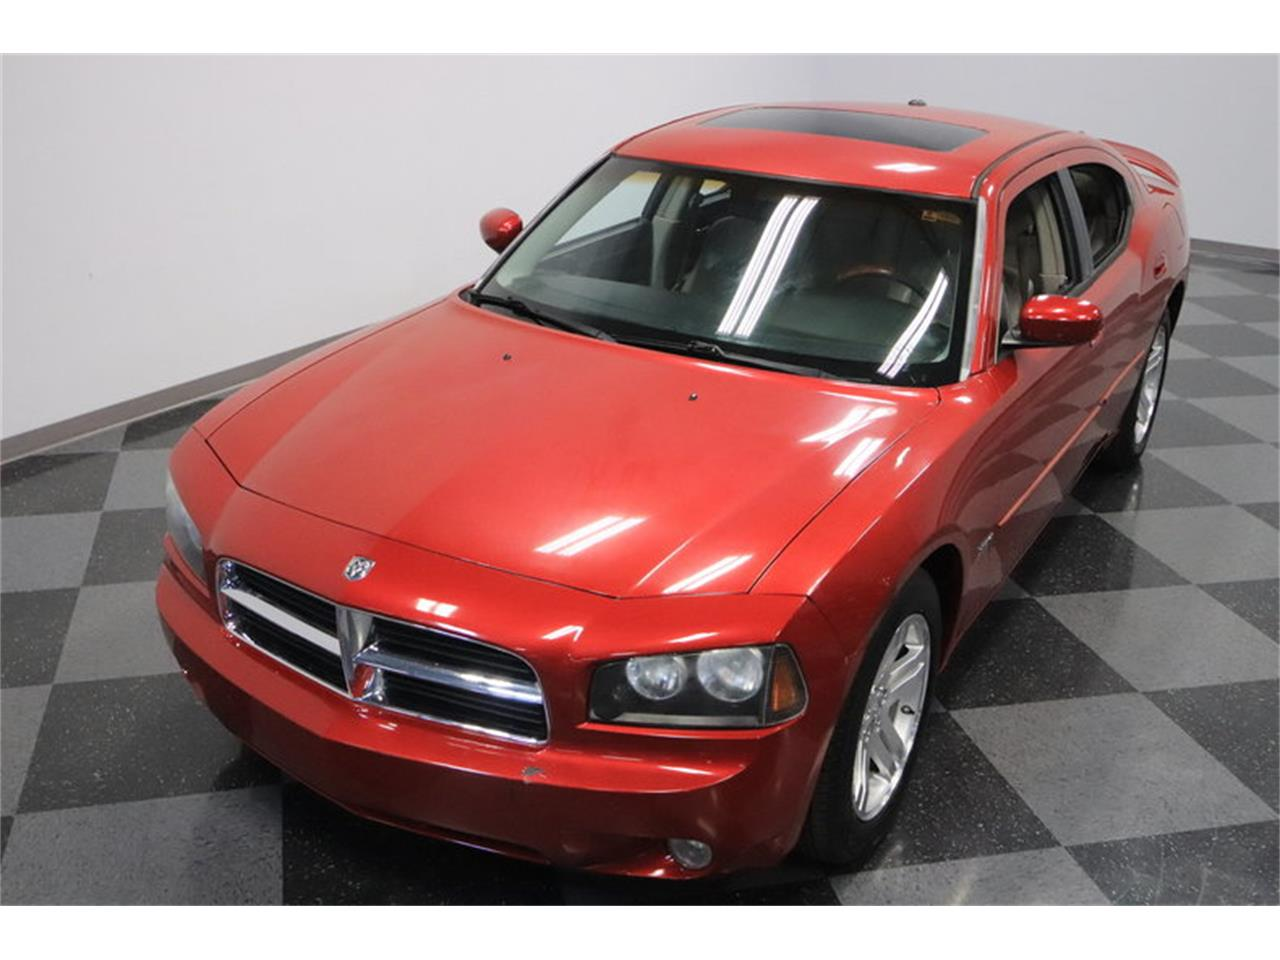 Large Picture of 2006 Charger R/T located in Arizona - $8,995.00 Offered by Streetside Classics - Phoenix - MZDF